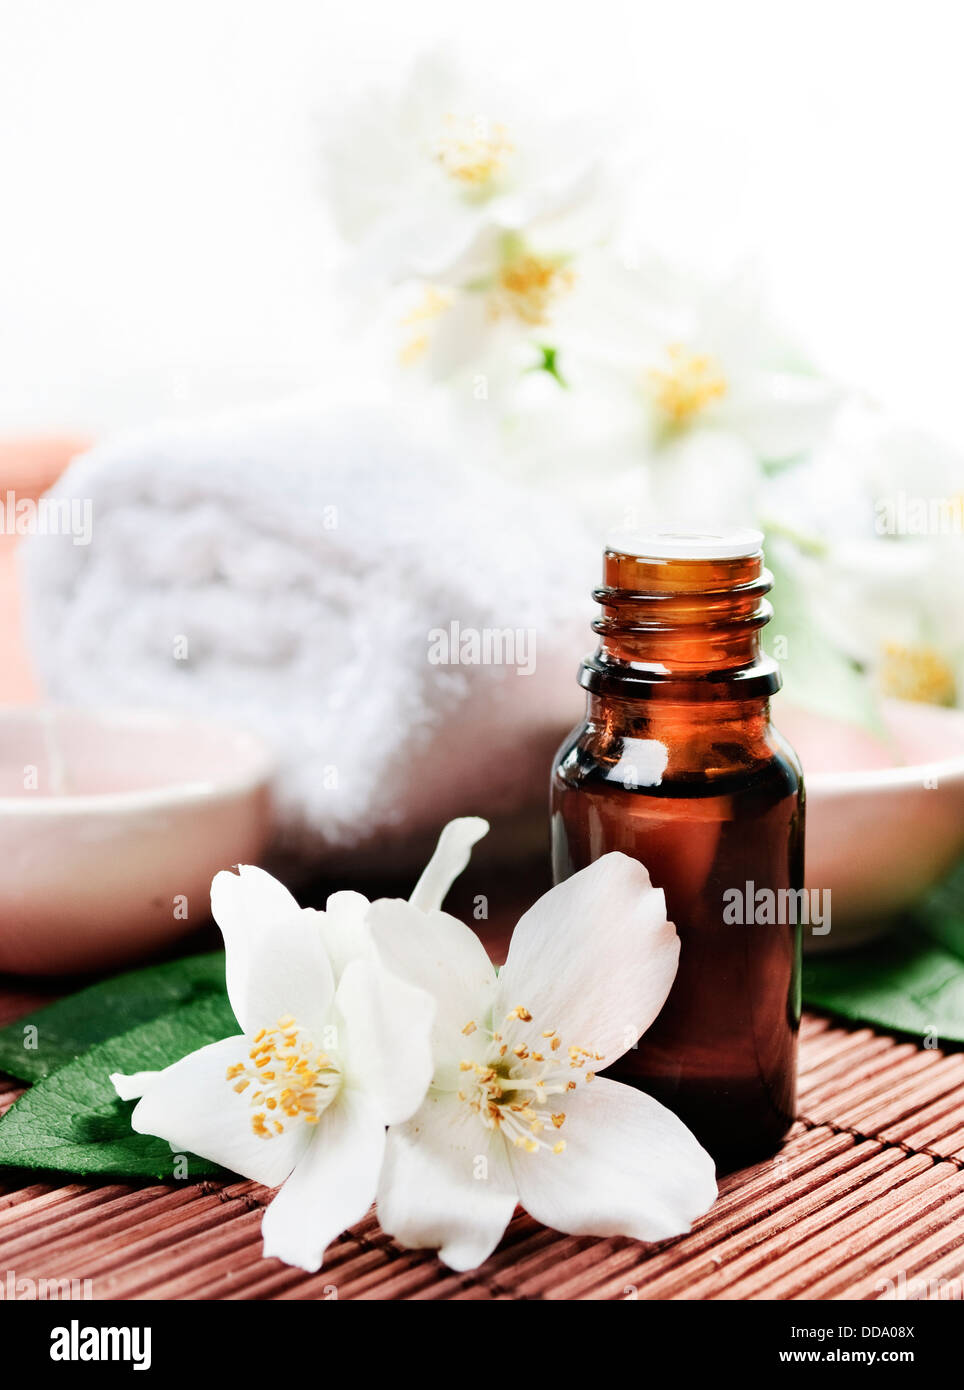 Essential Oil With Jasmine Flower On Wooden Background Stock Photo